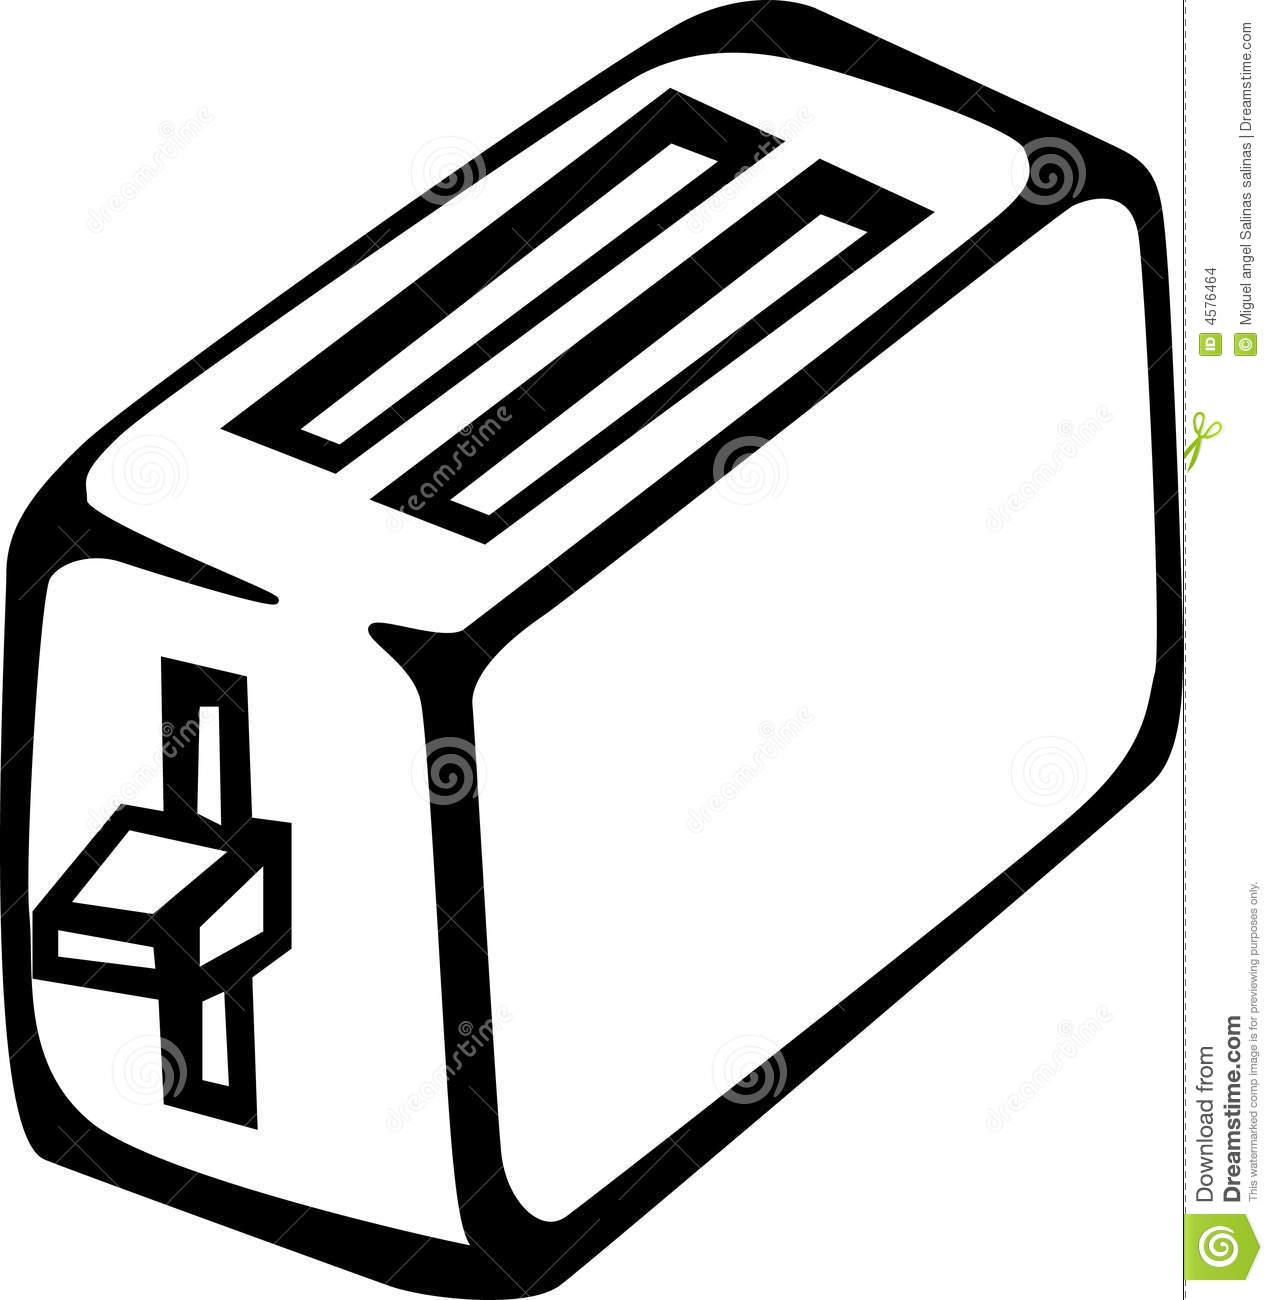 Toaster clipart black and white png freeuse library 13 Toaster Vector Graphic Images - Toaster Clip Art Black ... png freeuse library